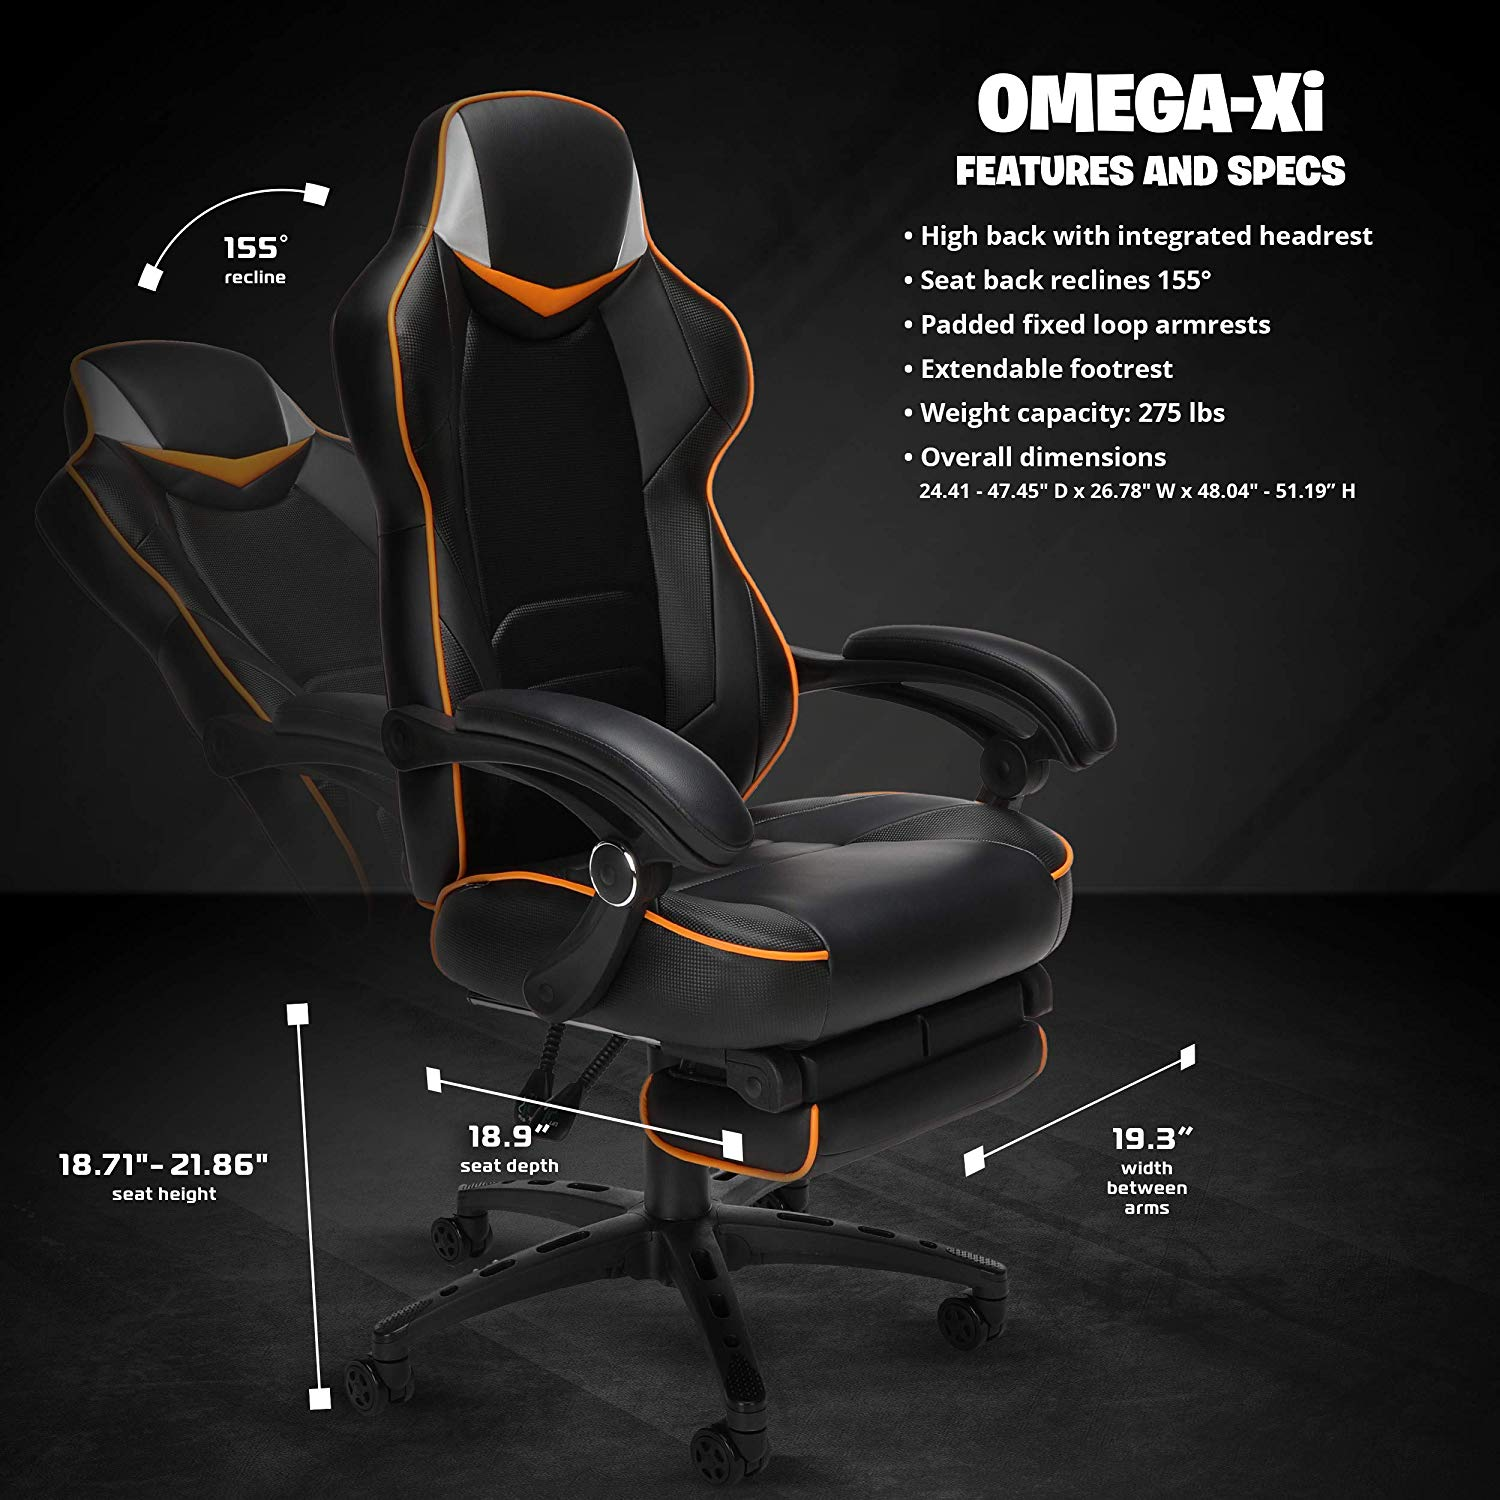 Reclining Ergonomic Chair with Footrest